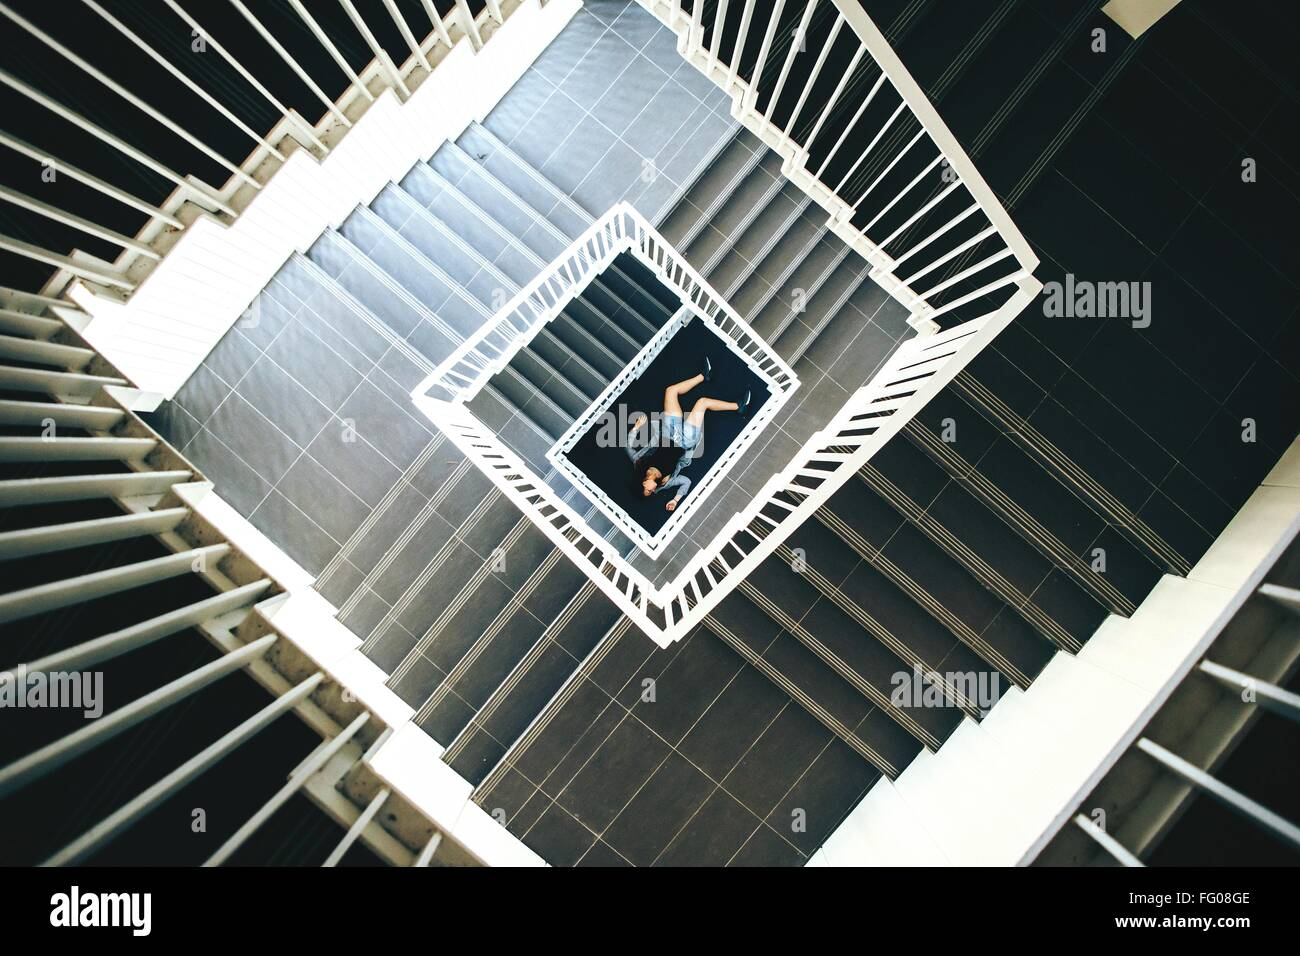 High Angle View Of Stairs With Woman Lying On Floor - Stock Image